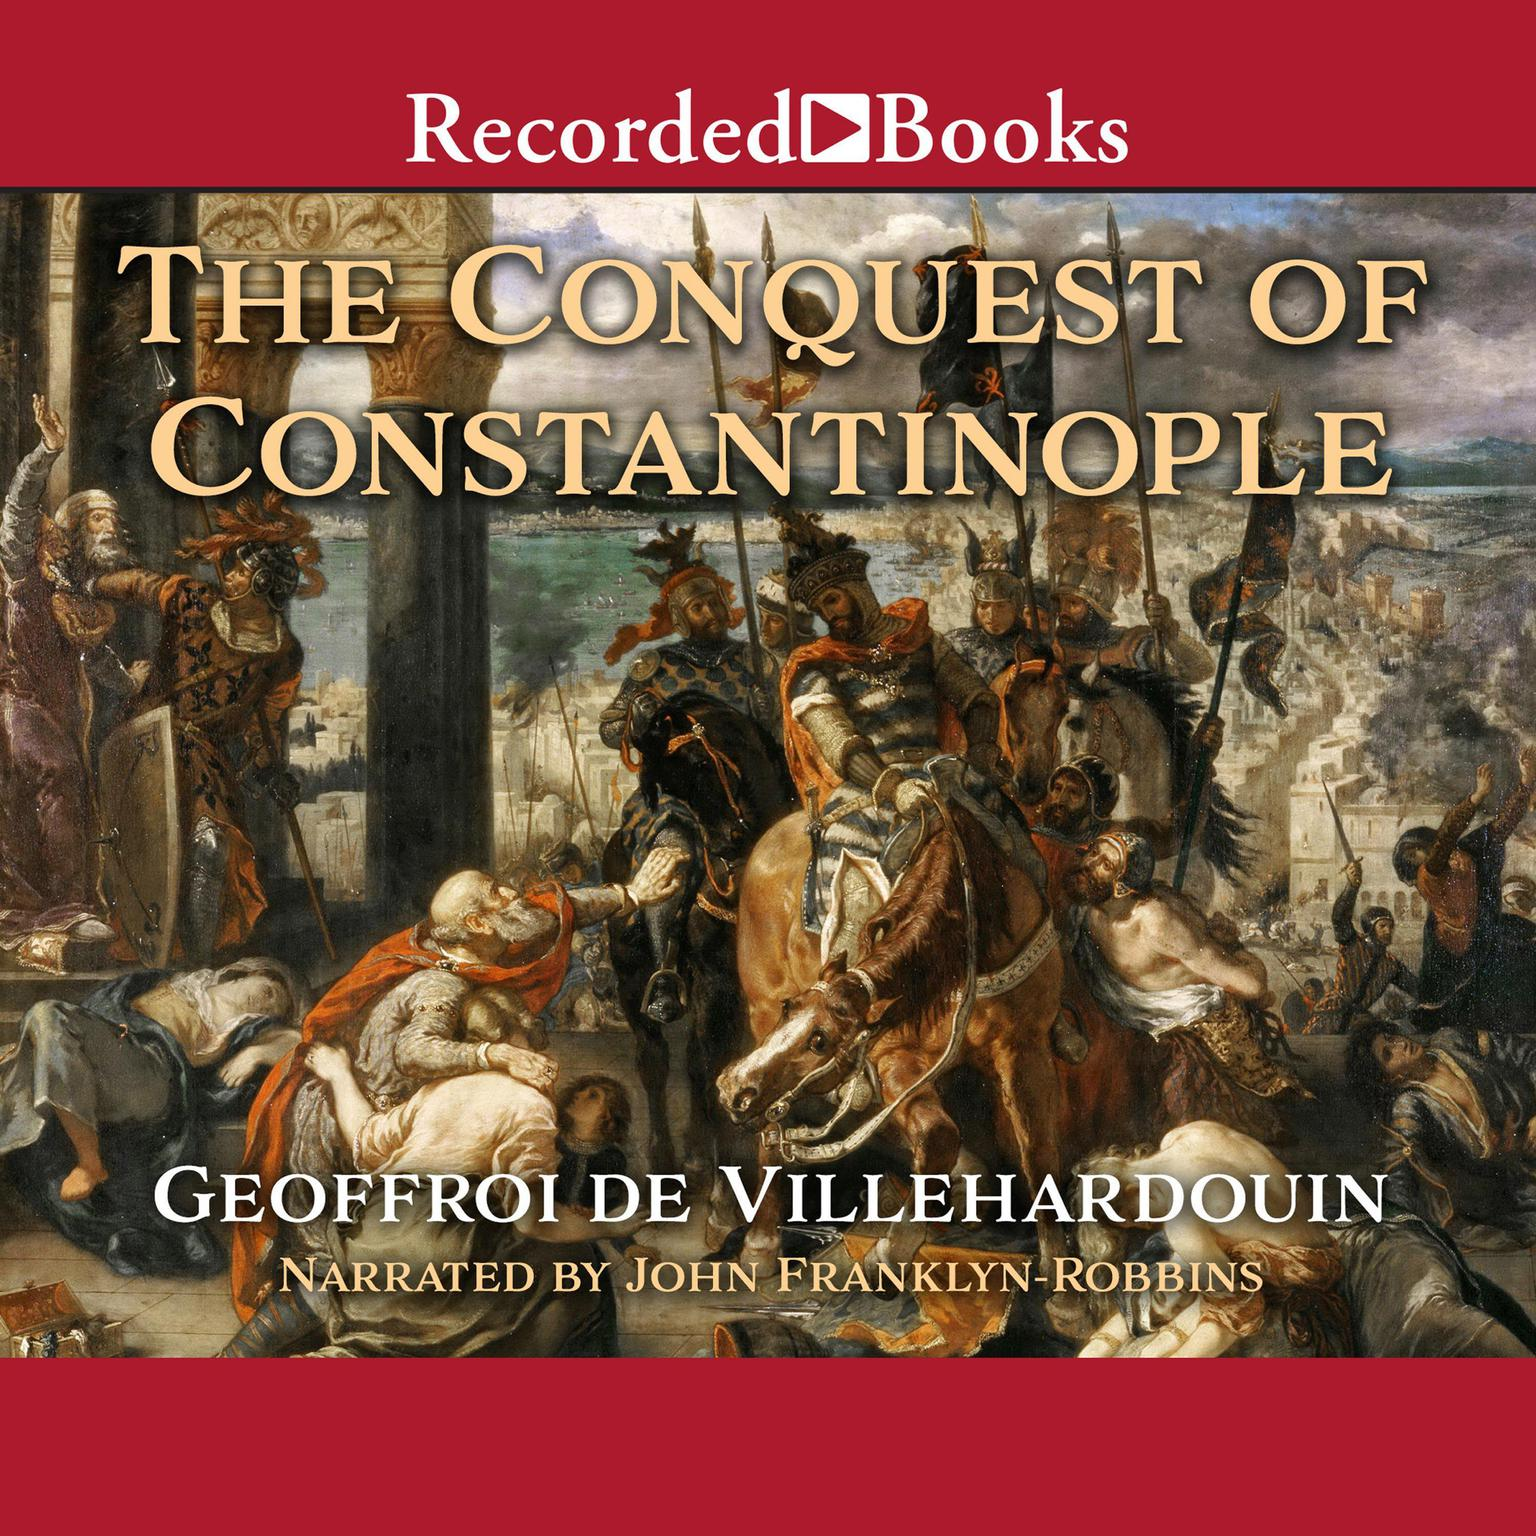 Printable The Conquest of Constantinople - Excerpts Audiobook Cover Art